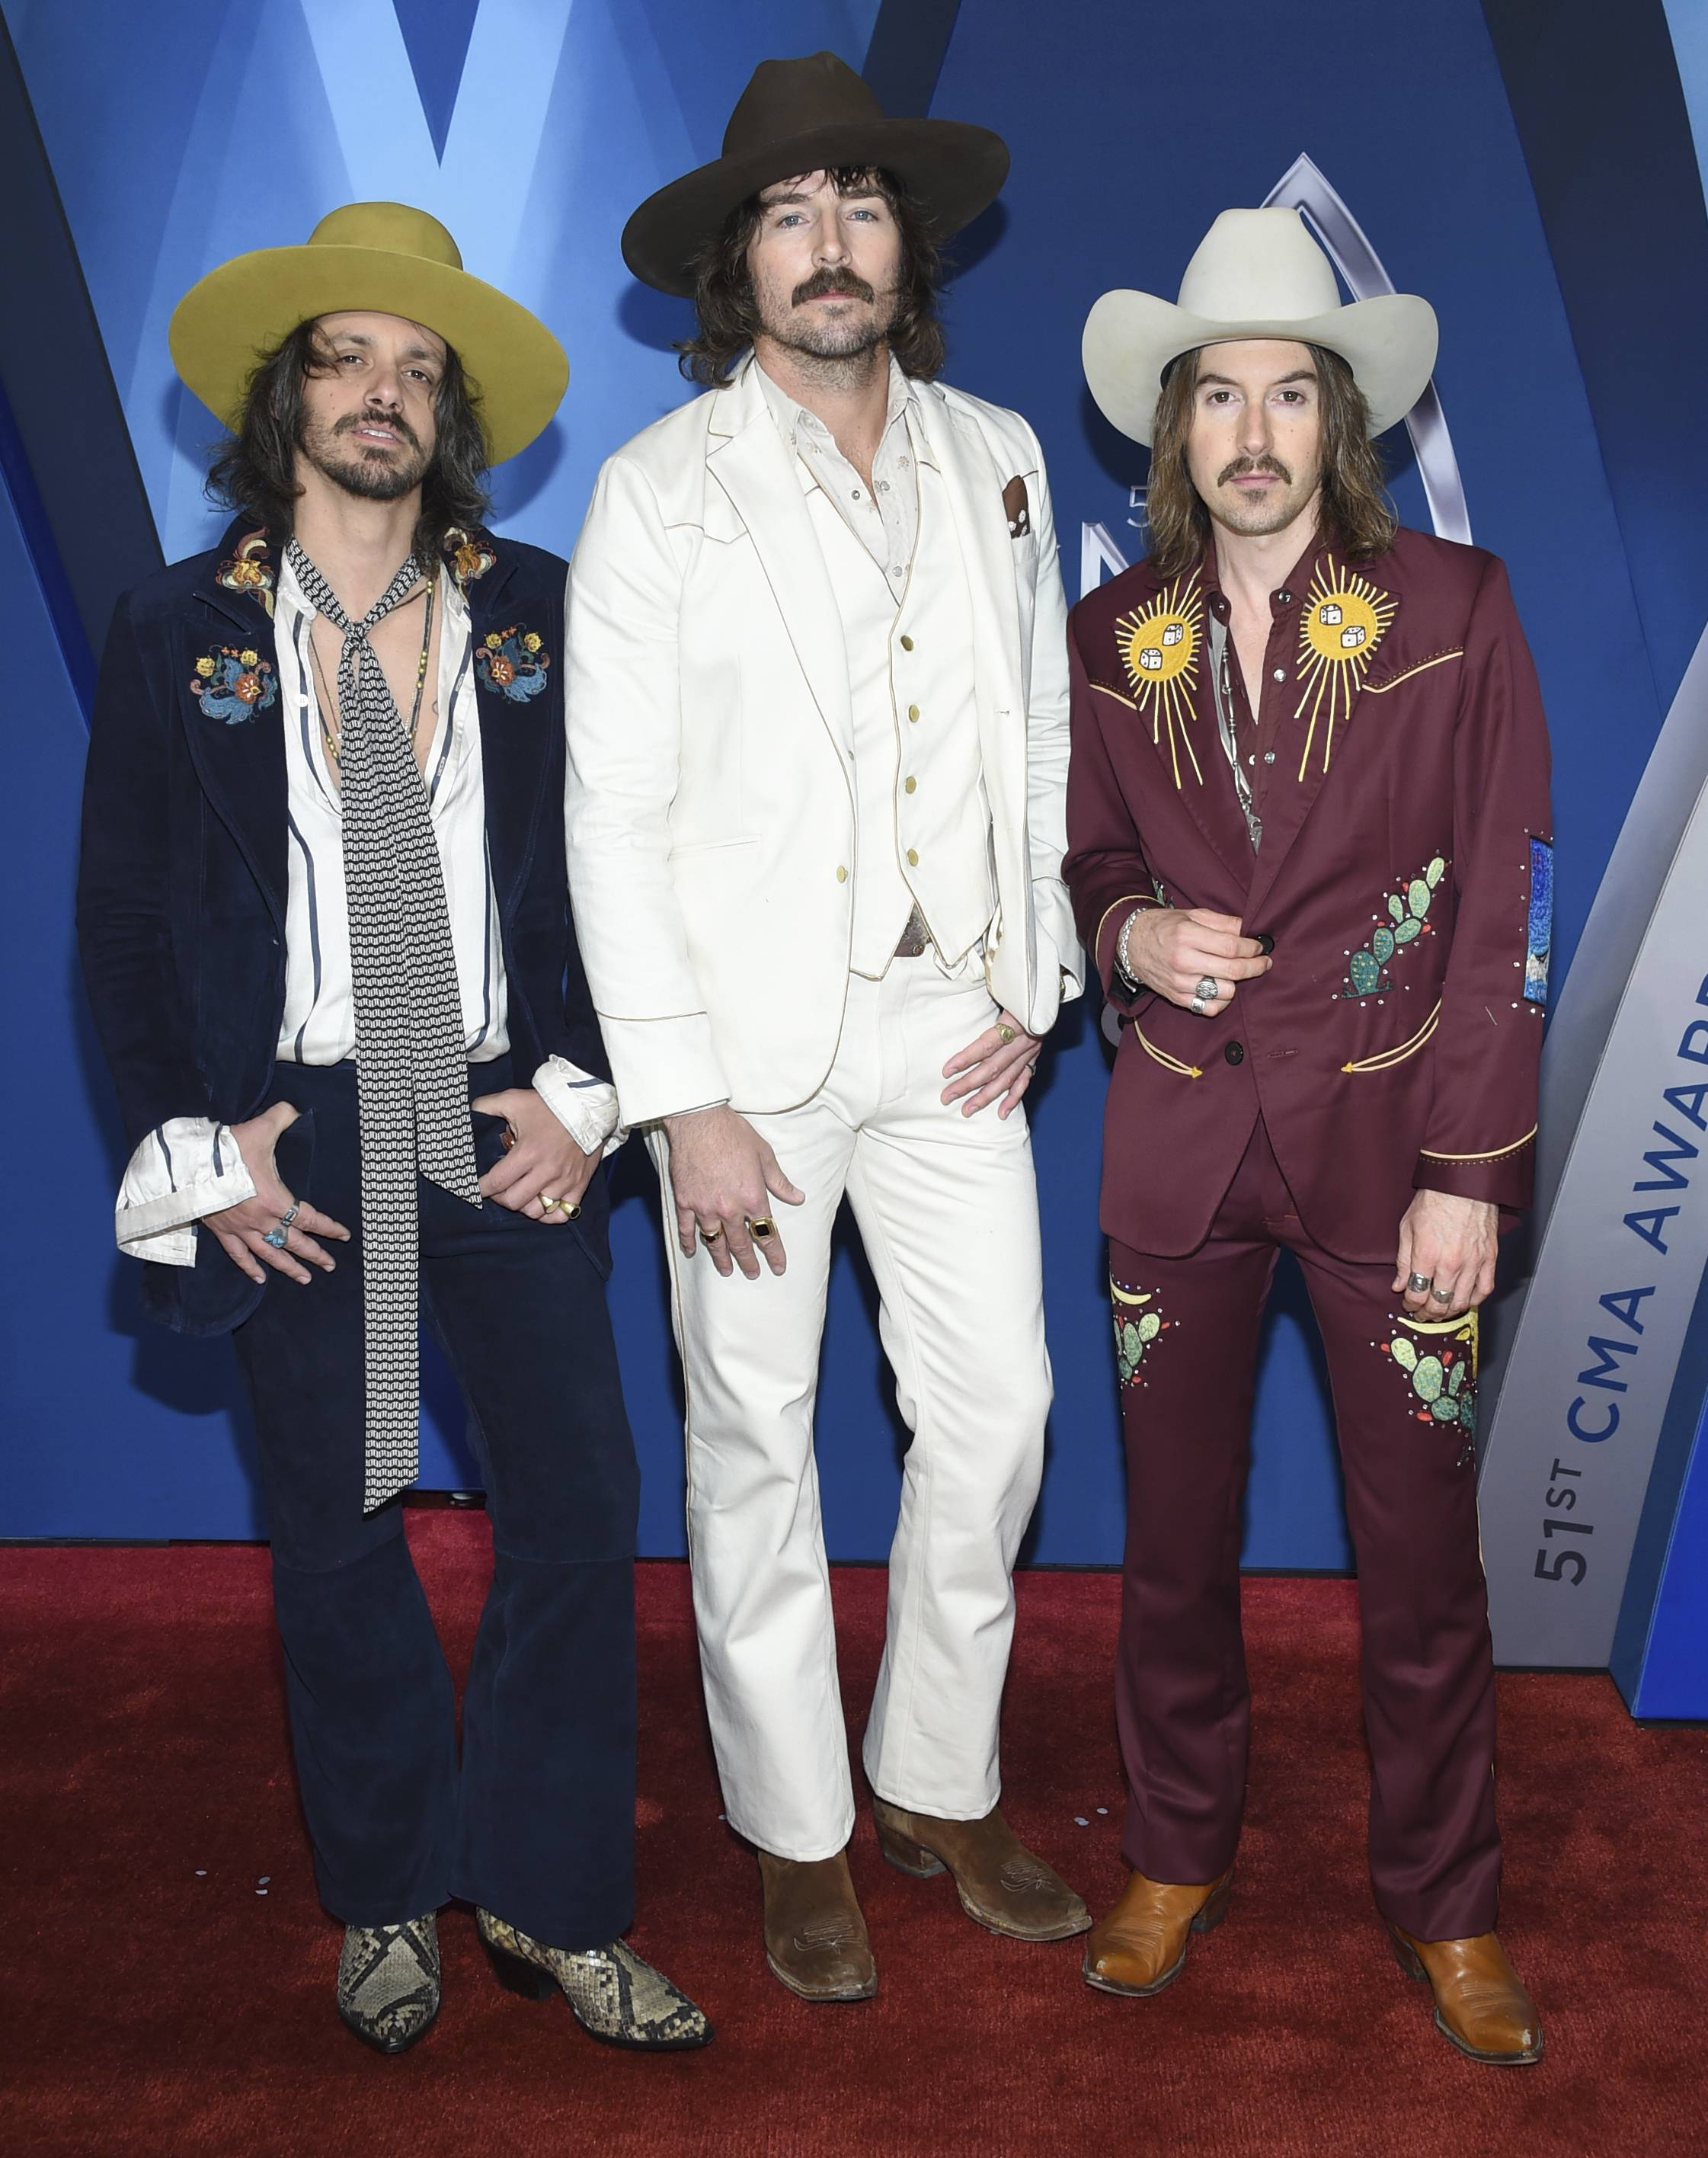 Midland -- Cameron Duddy, left, Mark Wystrach and Jess Carson -- were at the 51st annual CMA Awards on Wednesday in Nashville, Tenn. They play Chicago Nov. 16 and Rosemont Nov. 17.